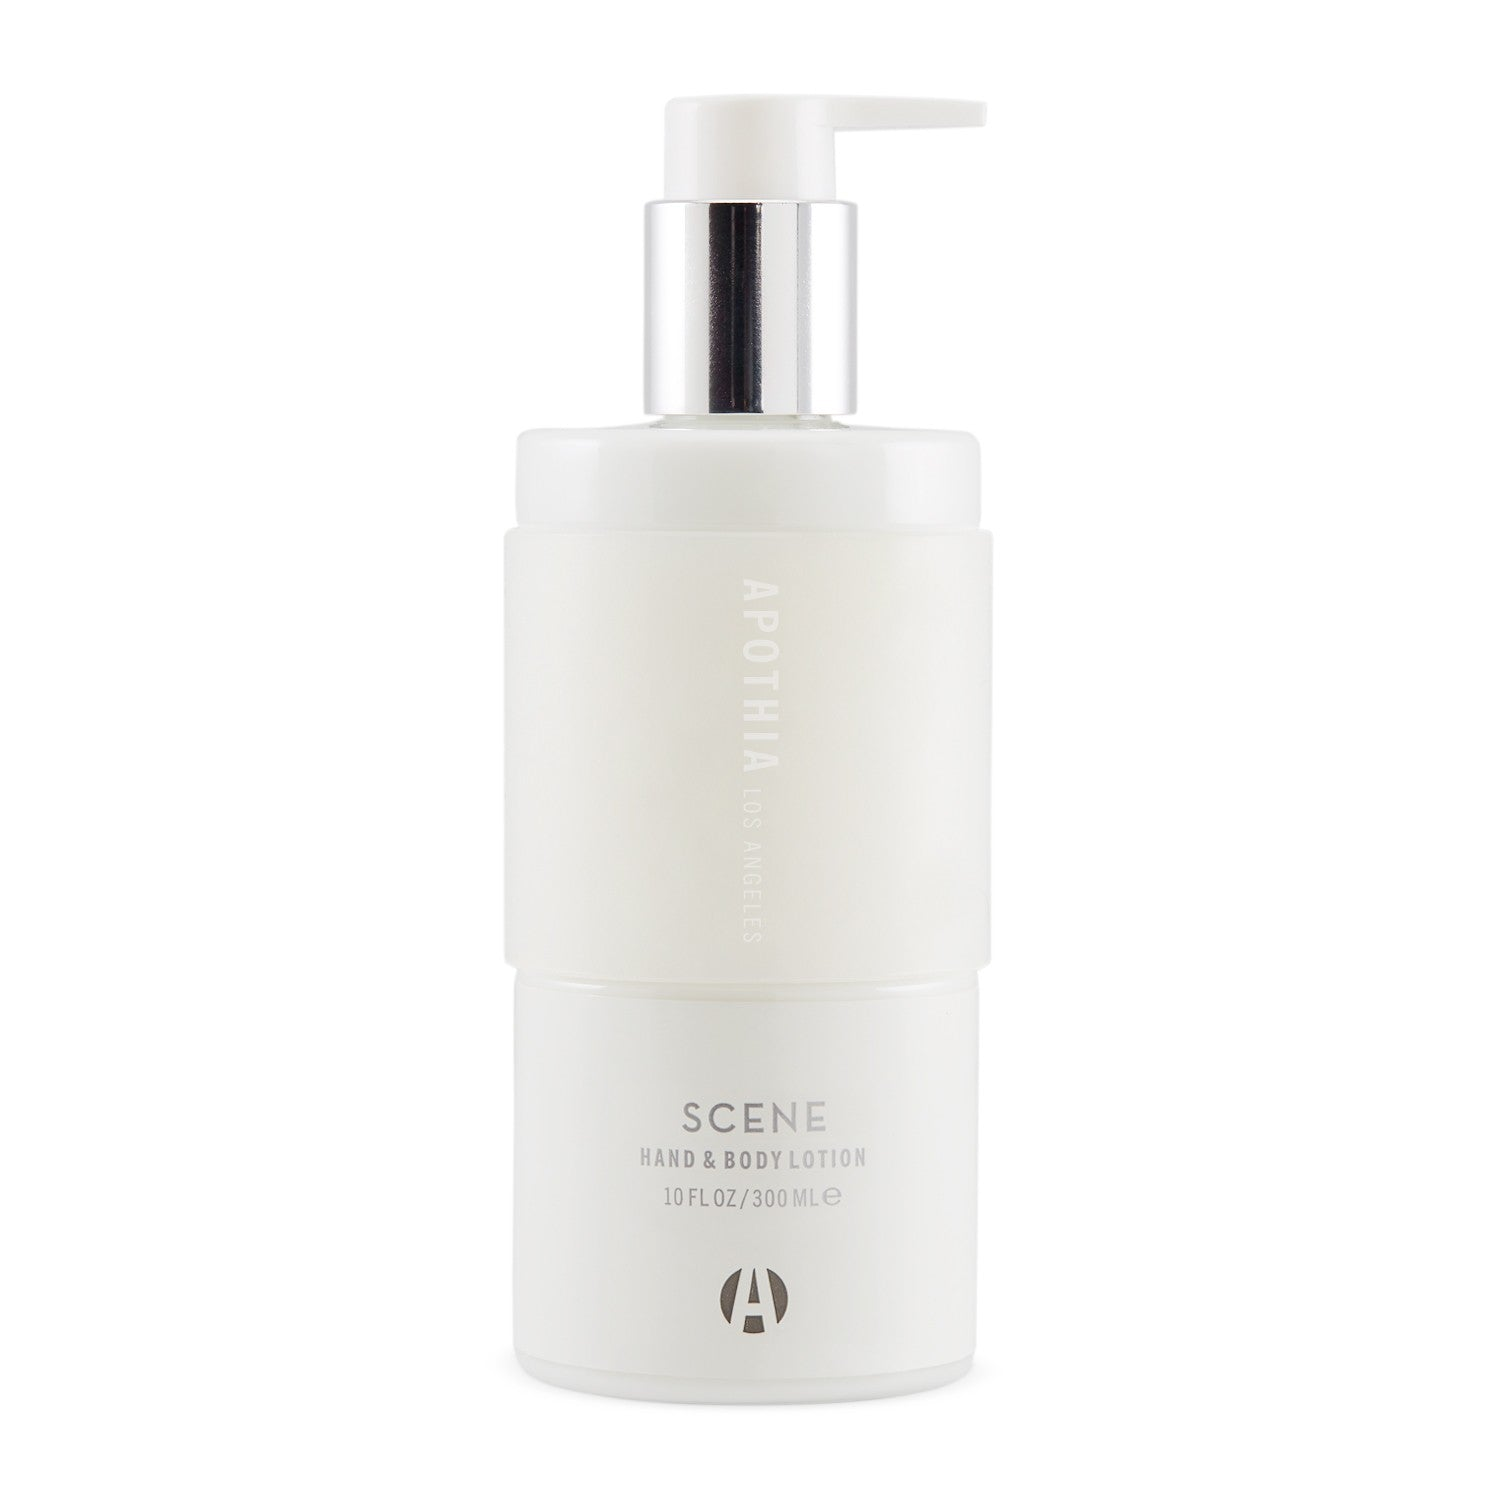 APOTHIA Hand & Body Lotion - Scene